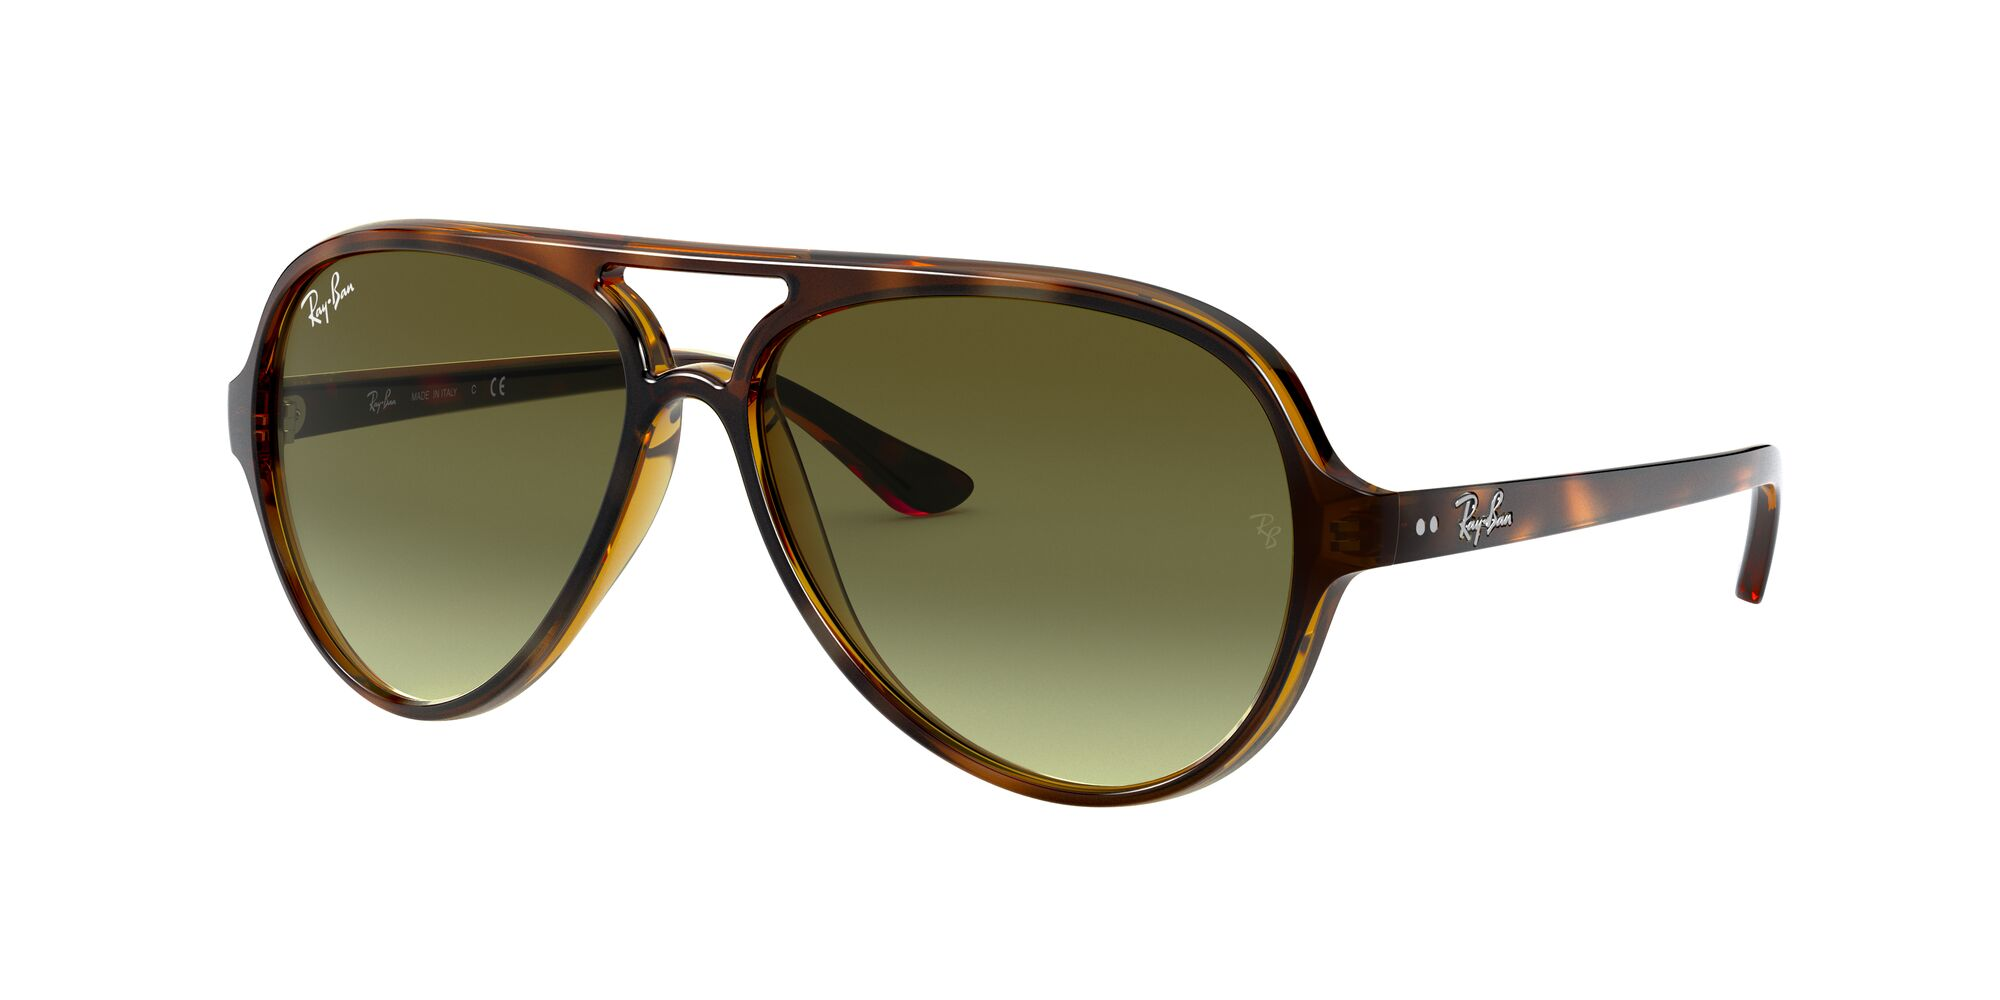 Angle_Left01 Ray-Ban Ray-Ban 0RB4125 710/A6 57/13 Zilver, Bruin/Groen